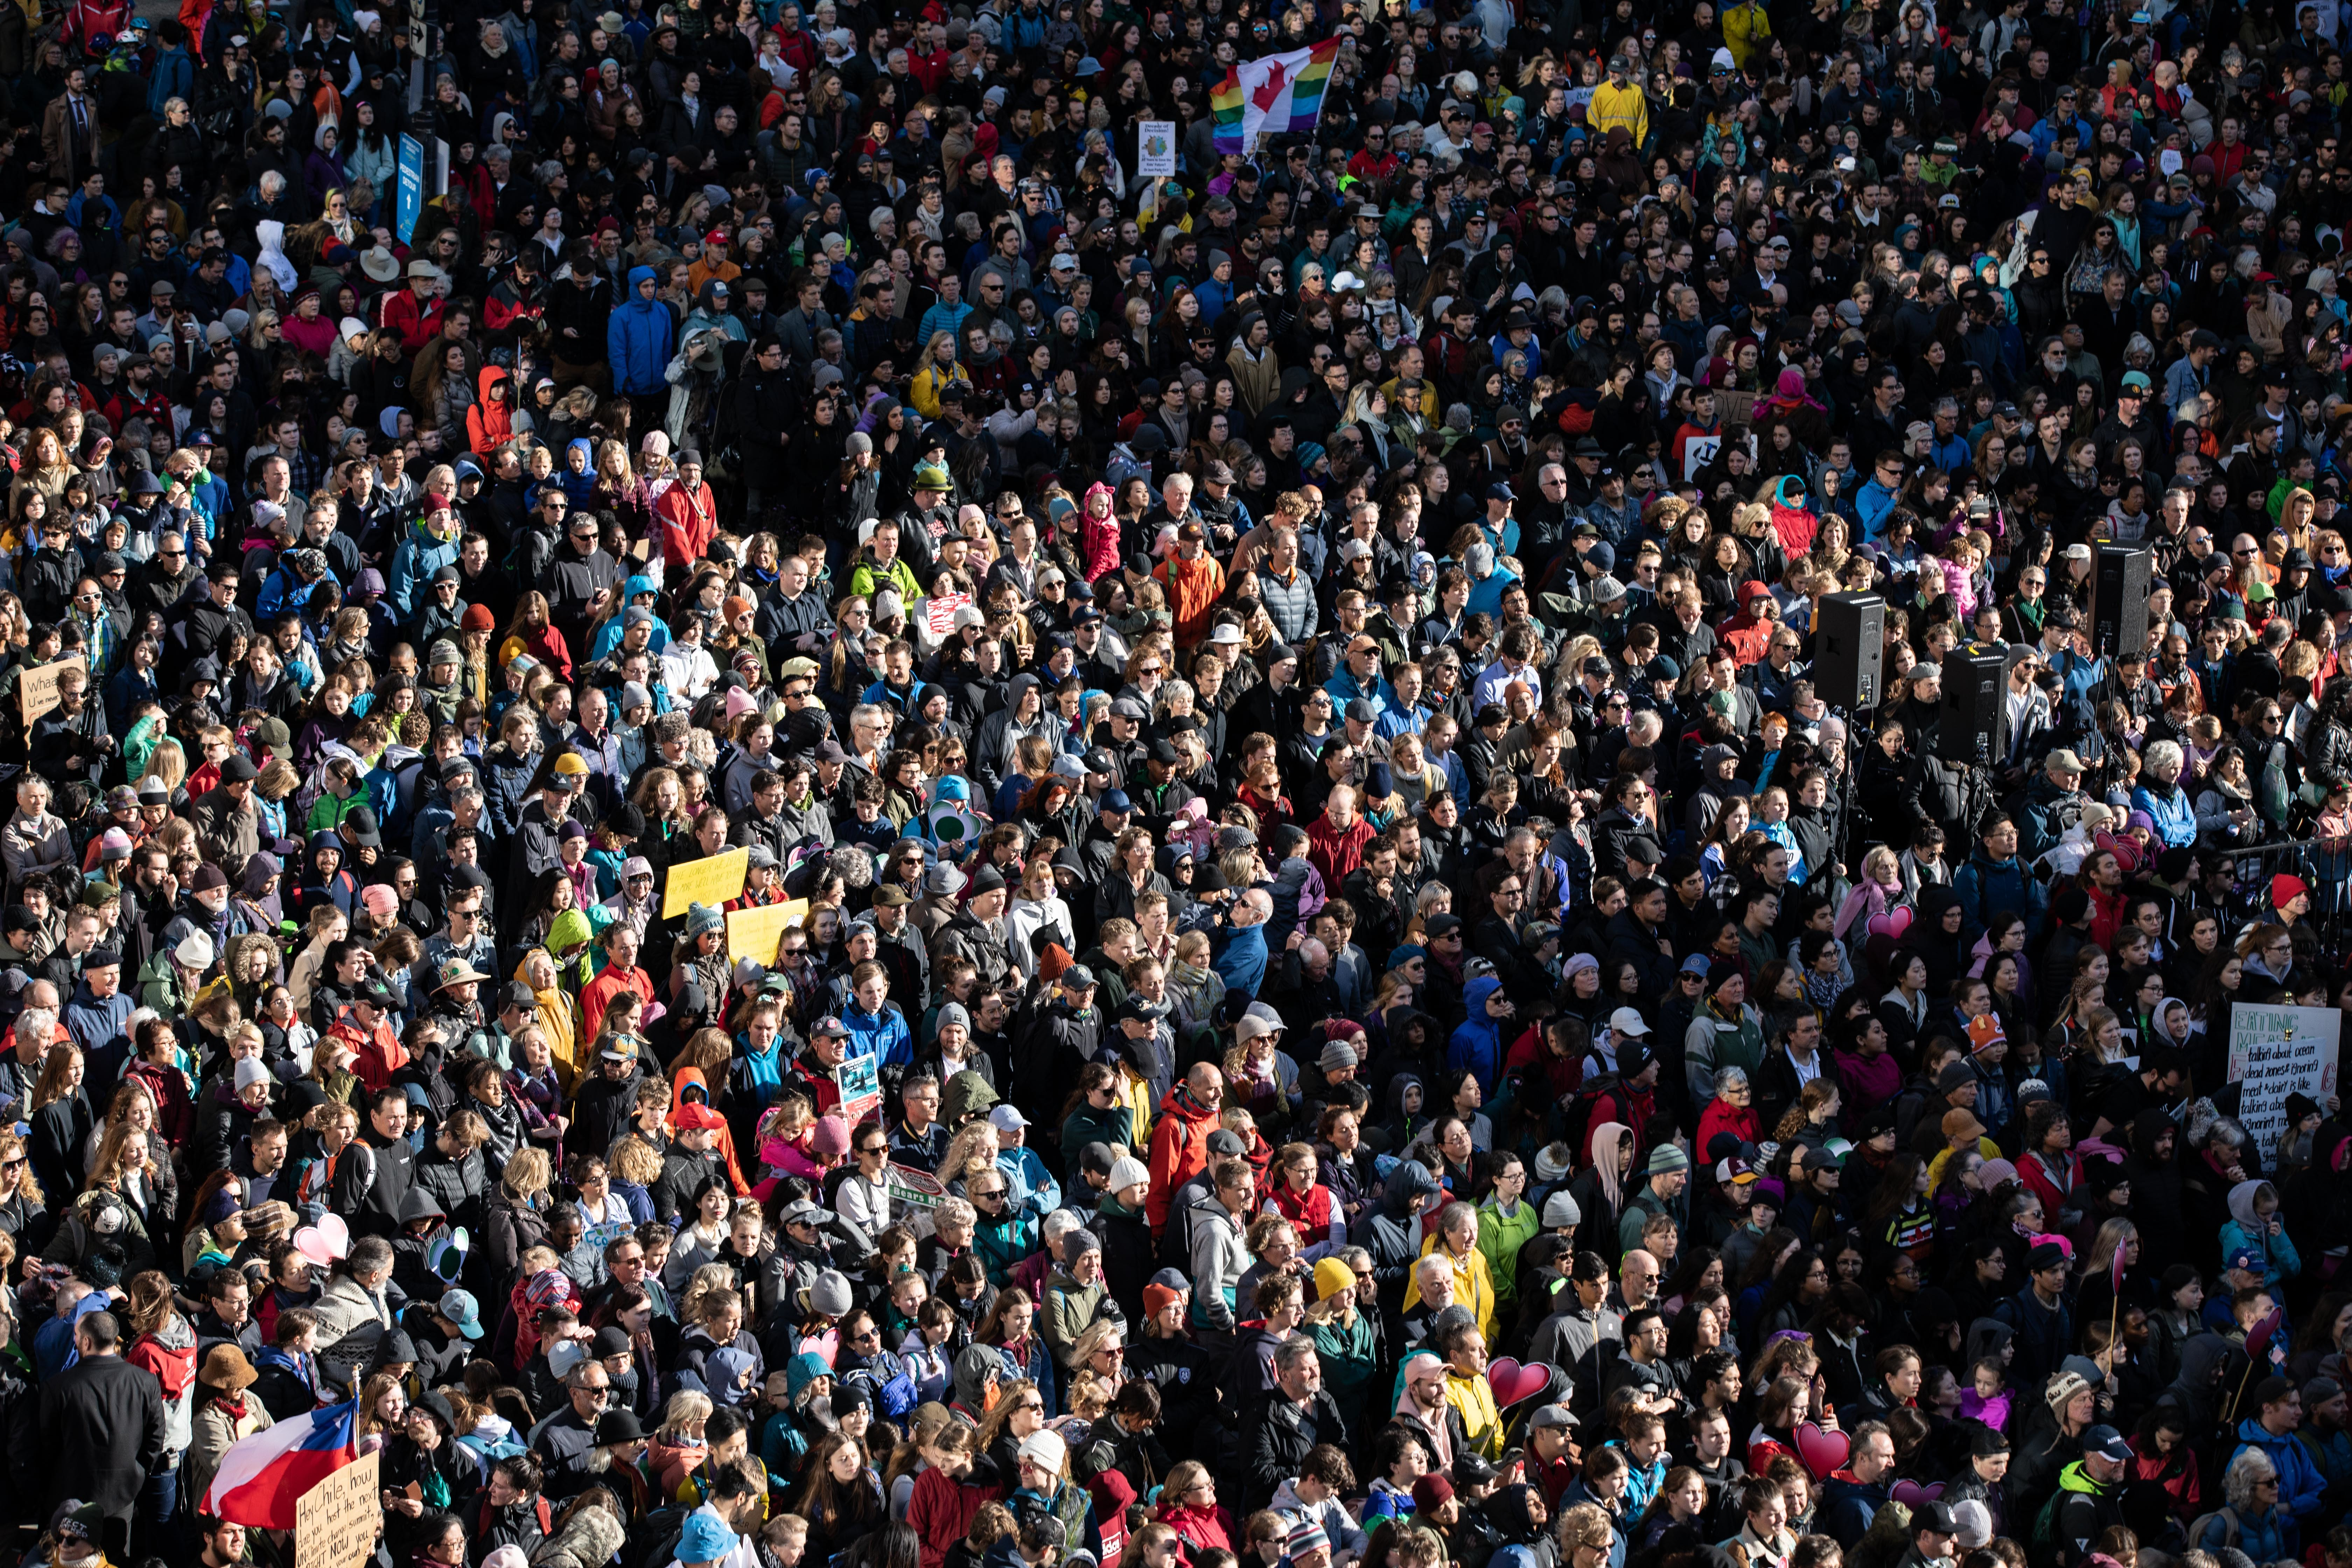 Thousands of people gather outside the Vancouver Art Gallery before a climate march visited by climate activist Greta Thunberg on Friday, Oct. 25, 2019. (Maggie MacPherson/CBC)